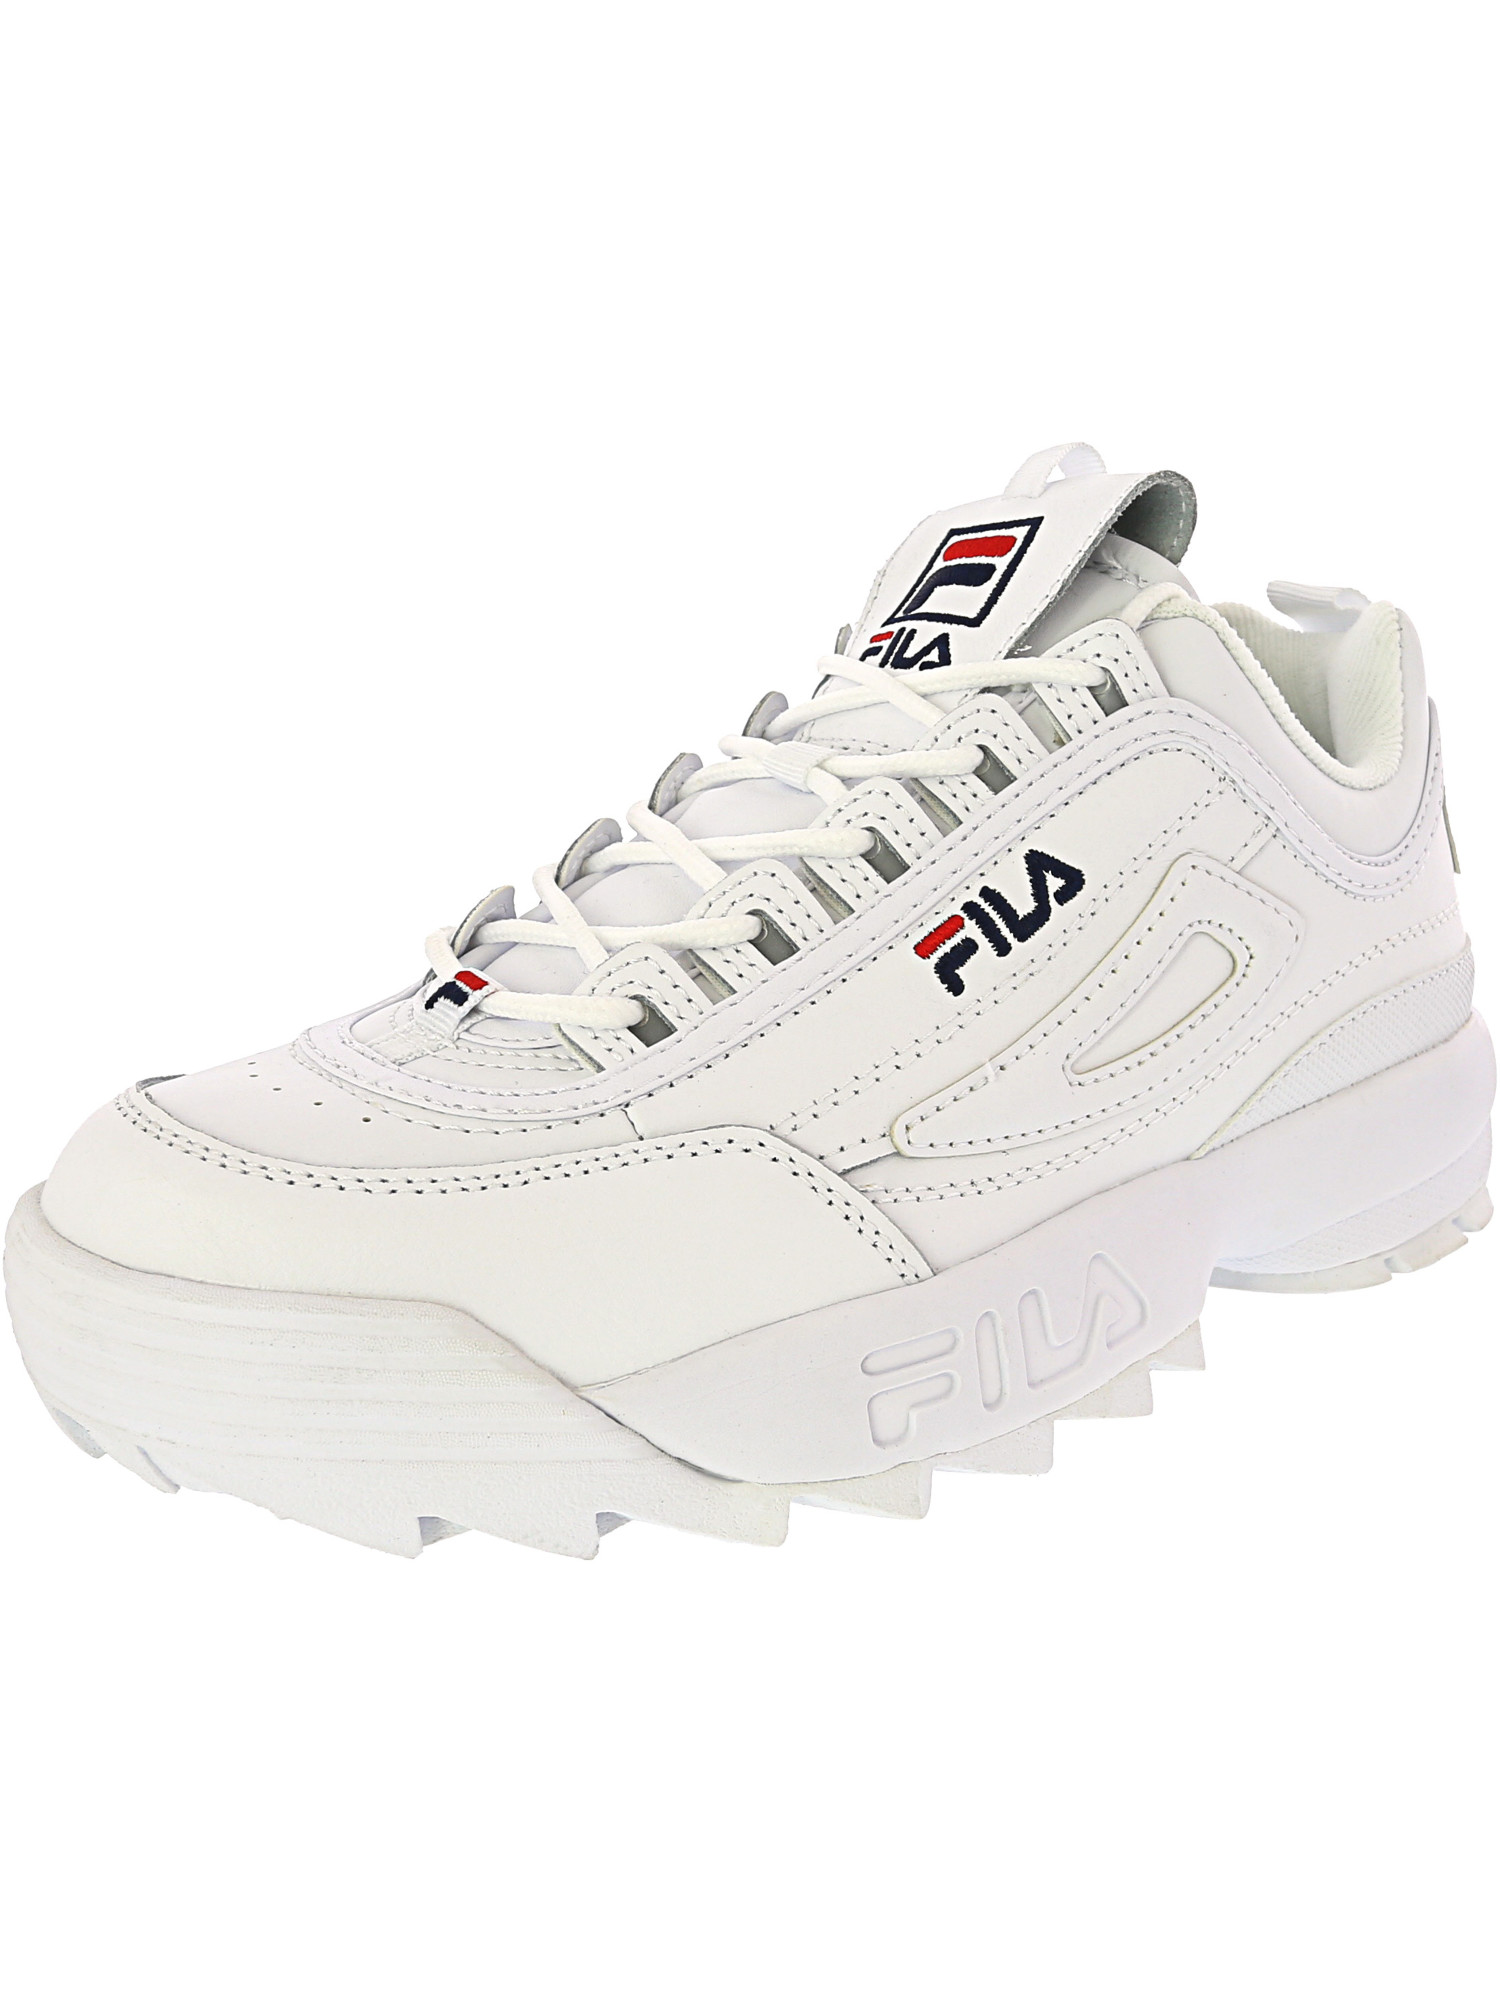 FILA Fila Men's Disruptor II Athletic Shoe